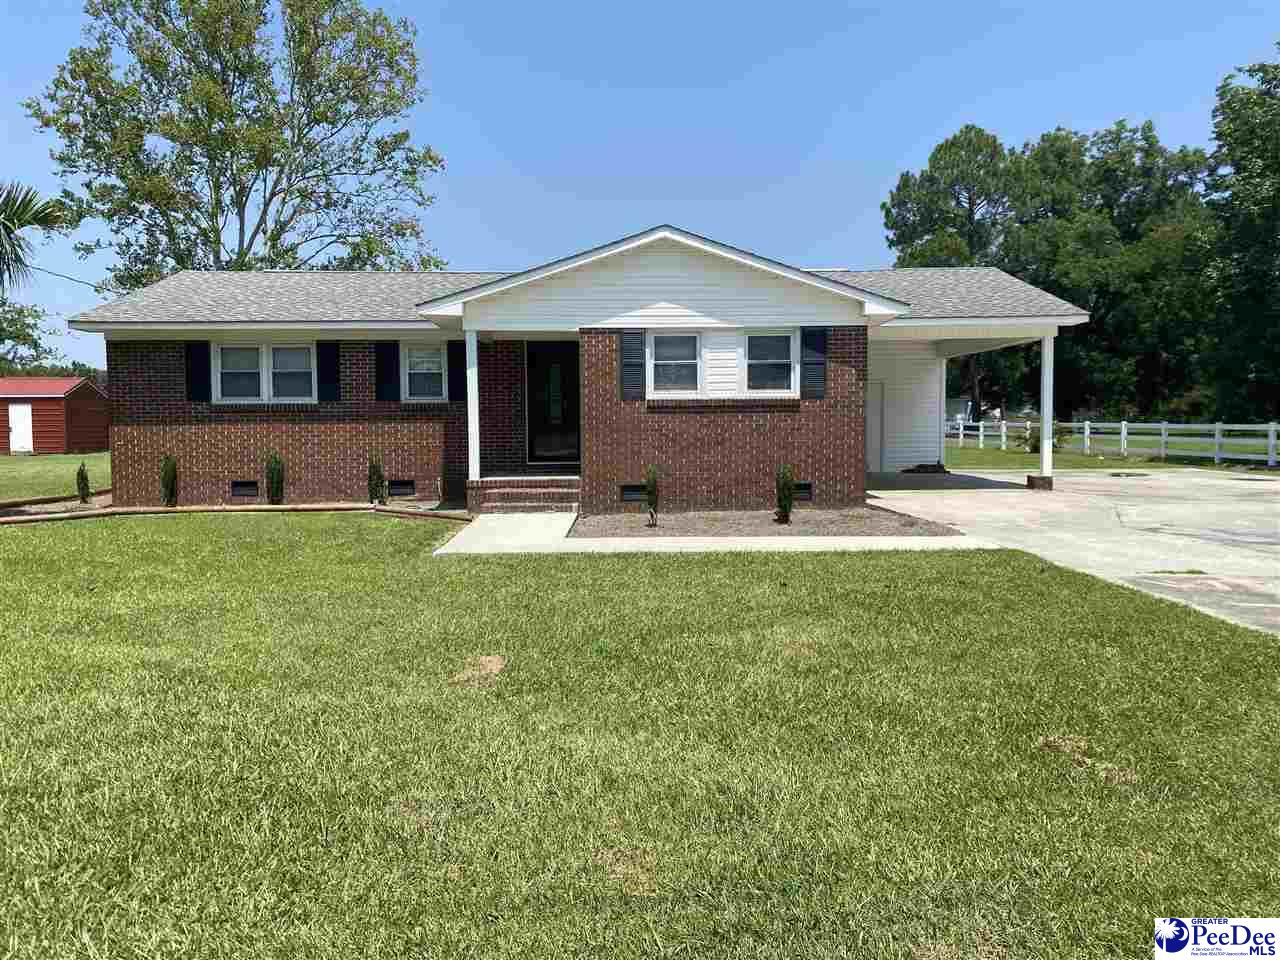 Completely renovated home looking for its new owner! Beautiful landscaped yards.   Home features 1,097 sq ft, 3 bedrooms and 1 bath, granite counter tops, and tile floor in bathroom.  2 storage areas, 1 car attached carport, and concrete drive.   Call today to view this home.